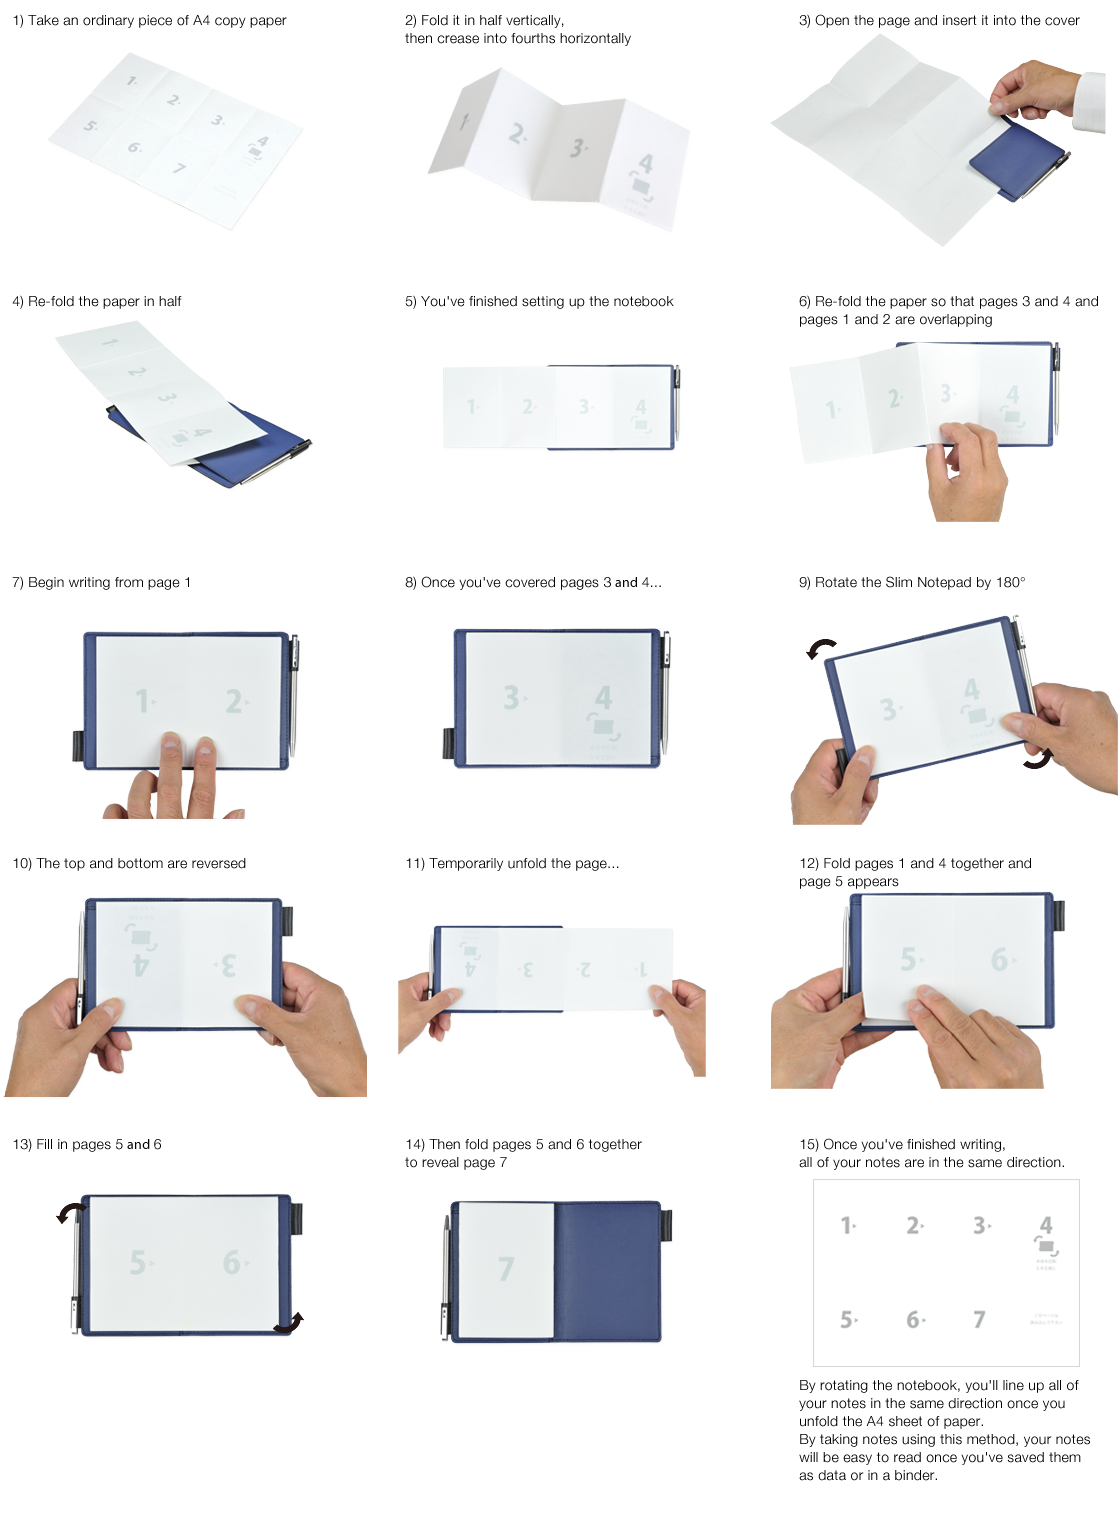 A new concept of a notebook, based on rotation